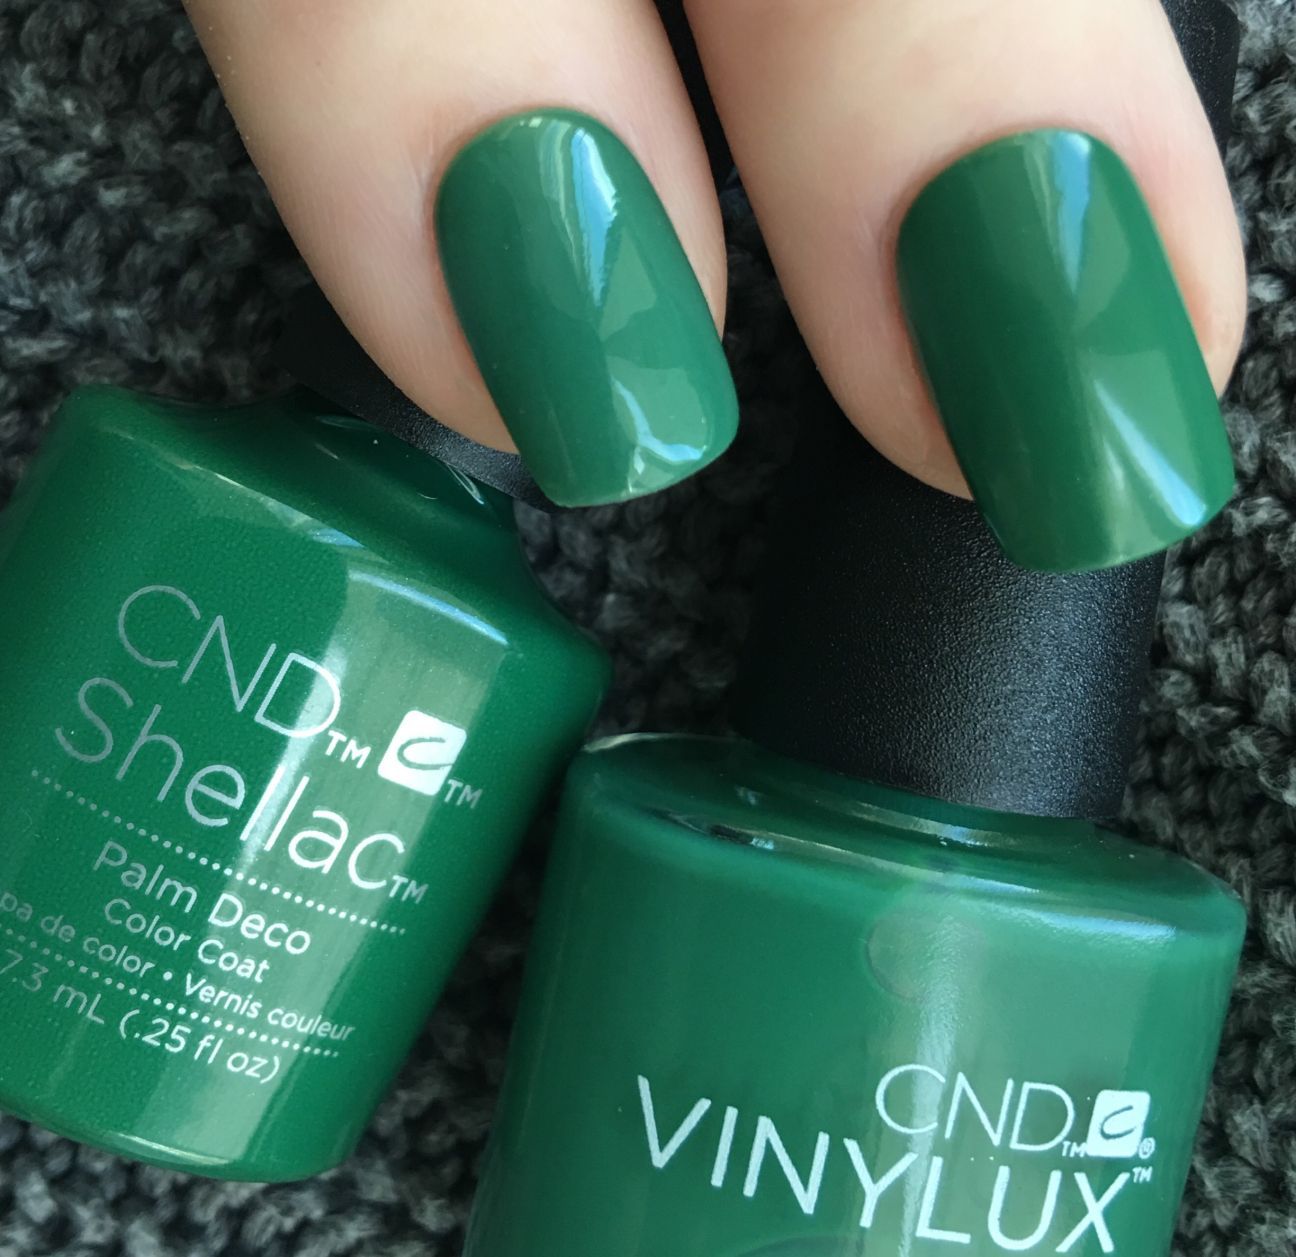 Shellac Palm Deco in Shellac and Vinylux photographed by Fee Wallace ...